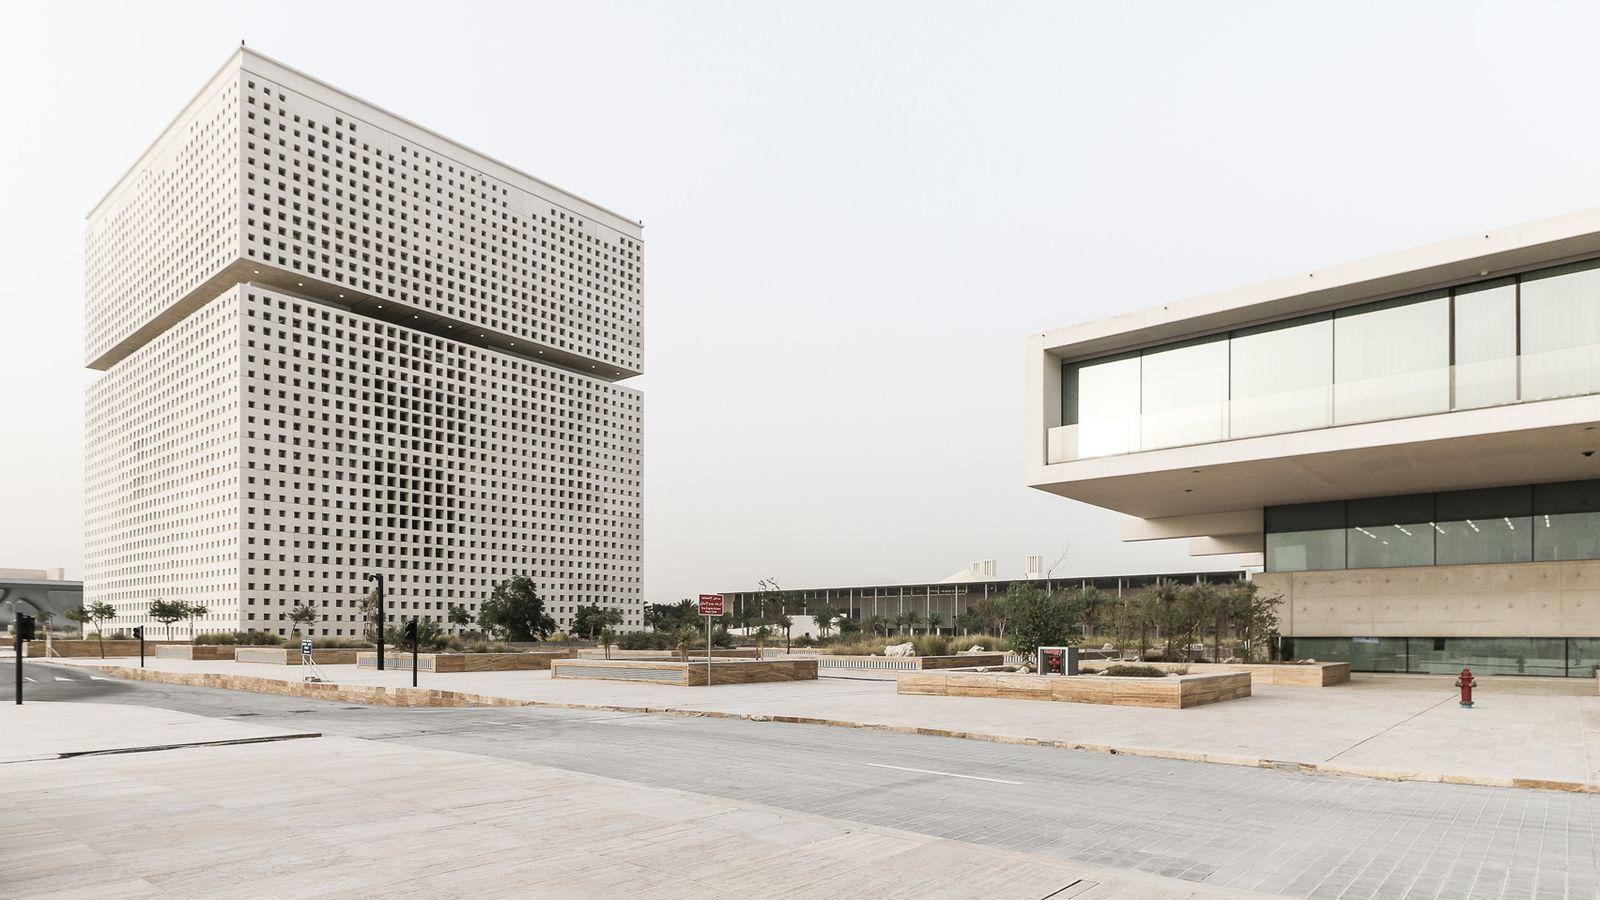 Oma Designed Qatar Foundation Unveiled In New Photos Curbed